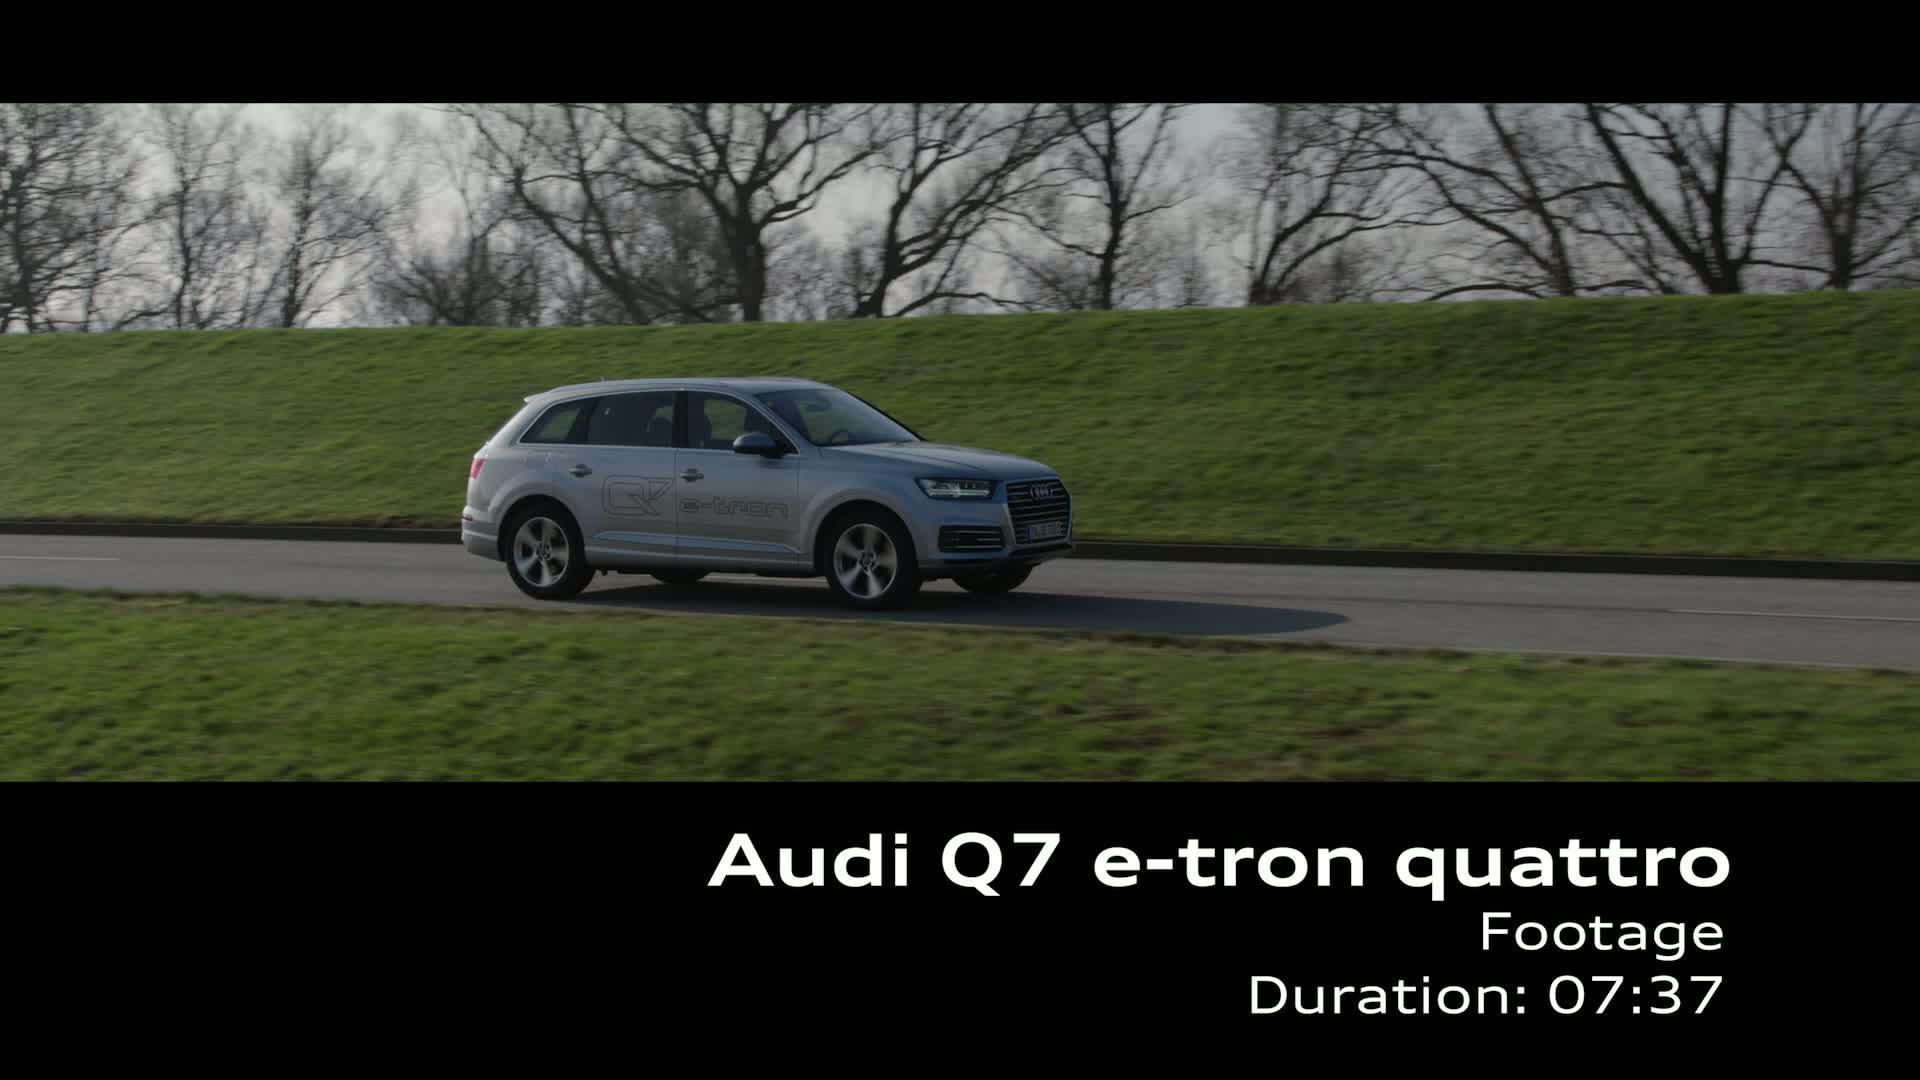 The Audi Q7 e-tron 3.0 TDI quattro - Footage